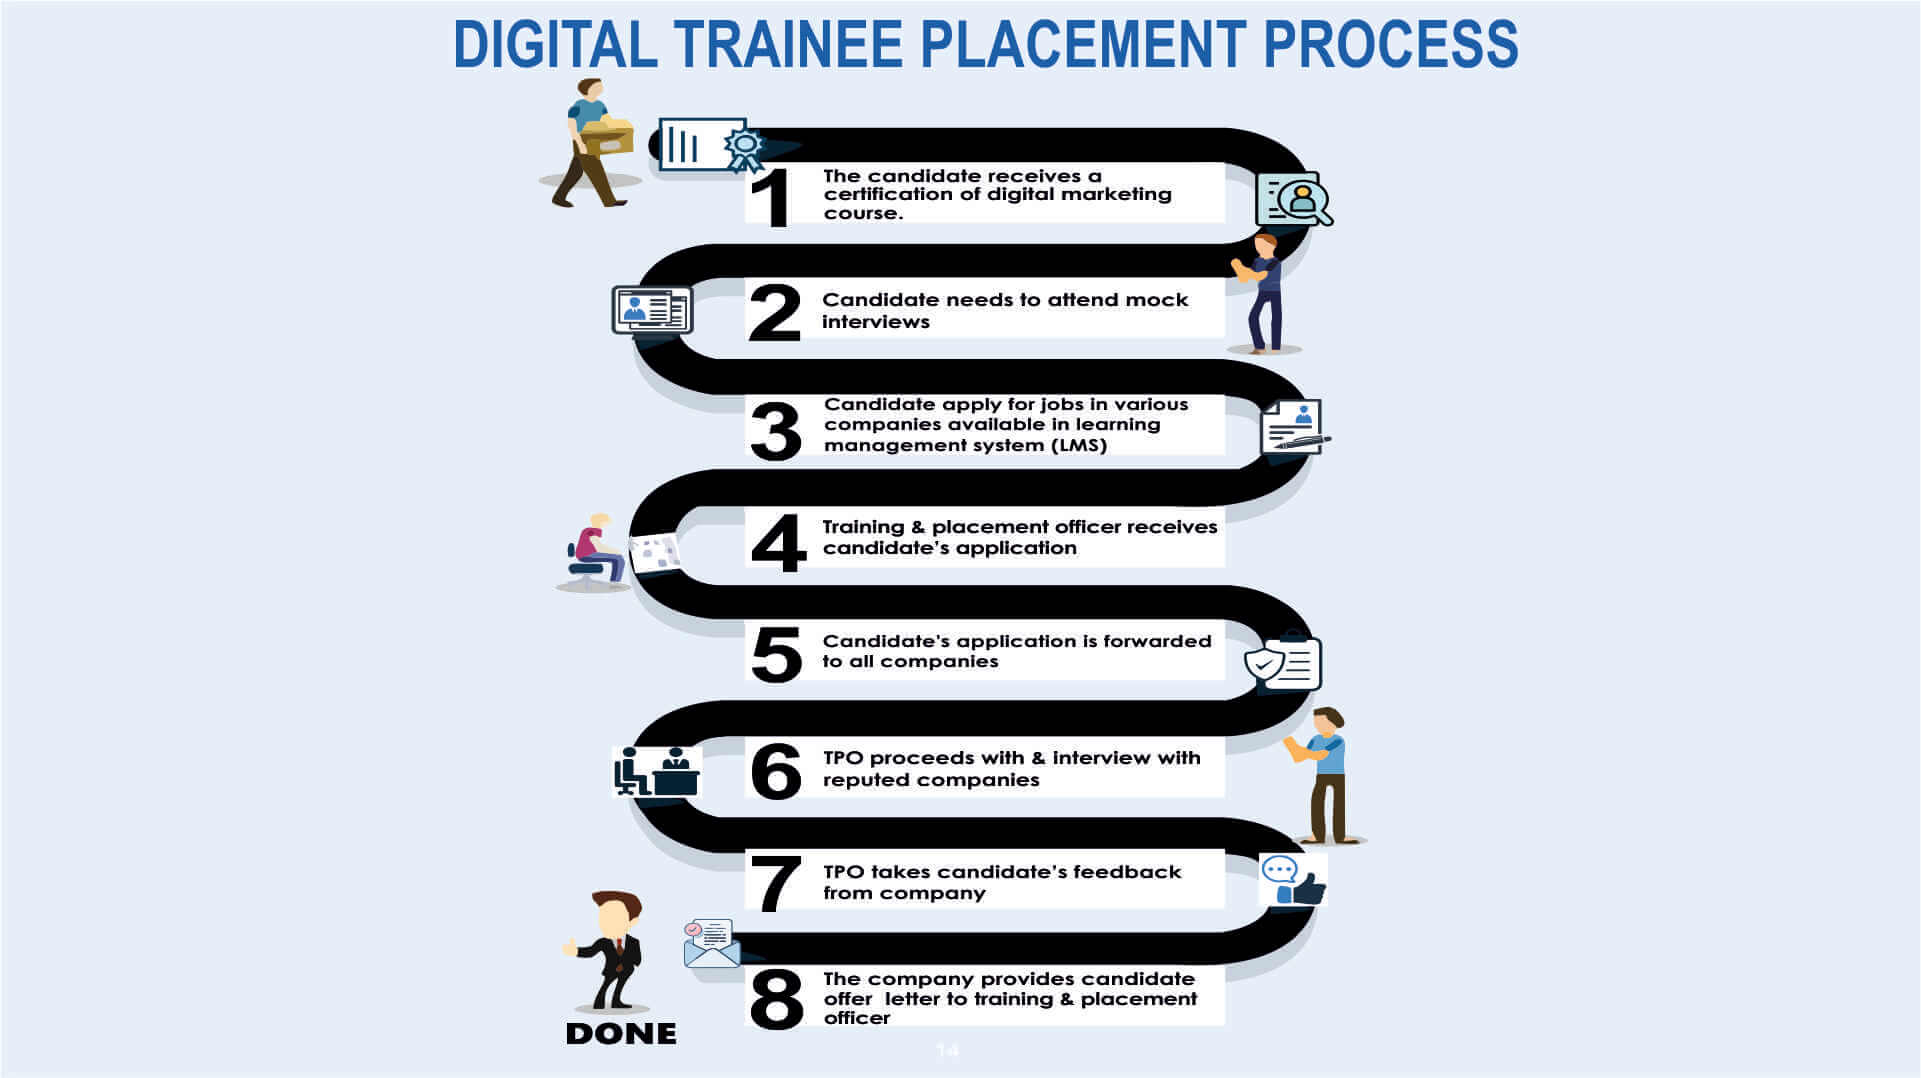 Digital Trainee Placement Process